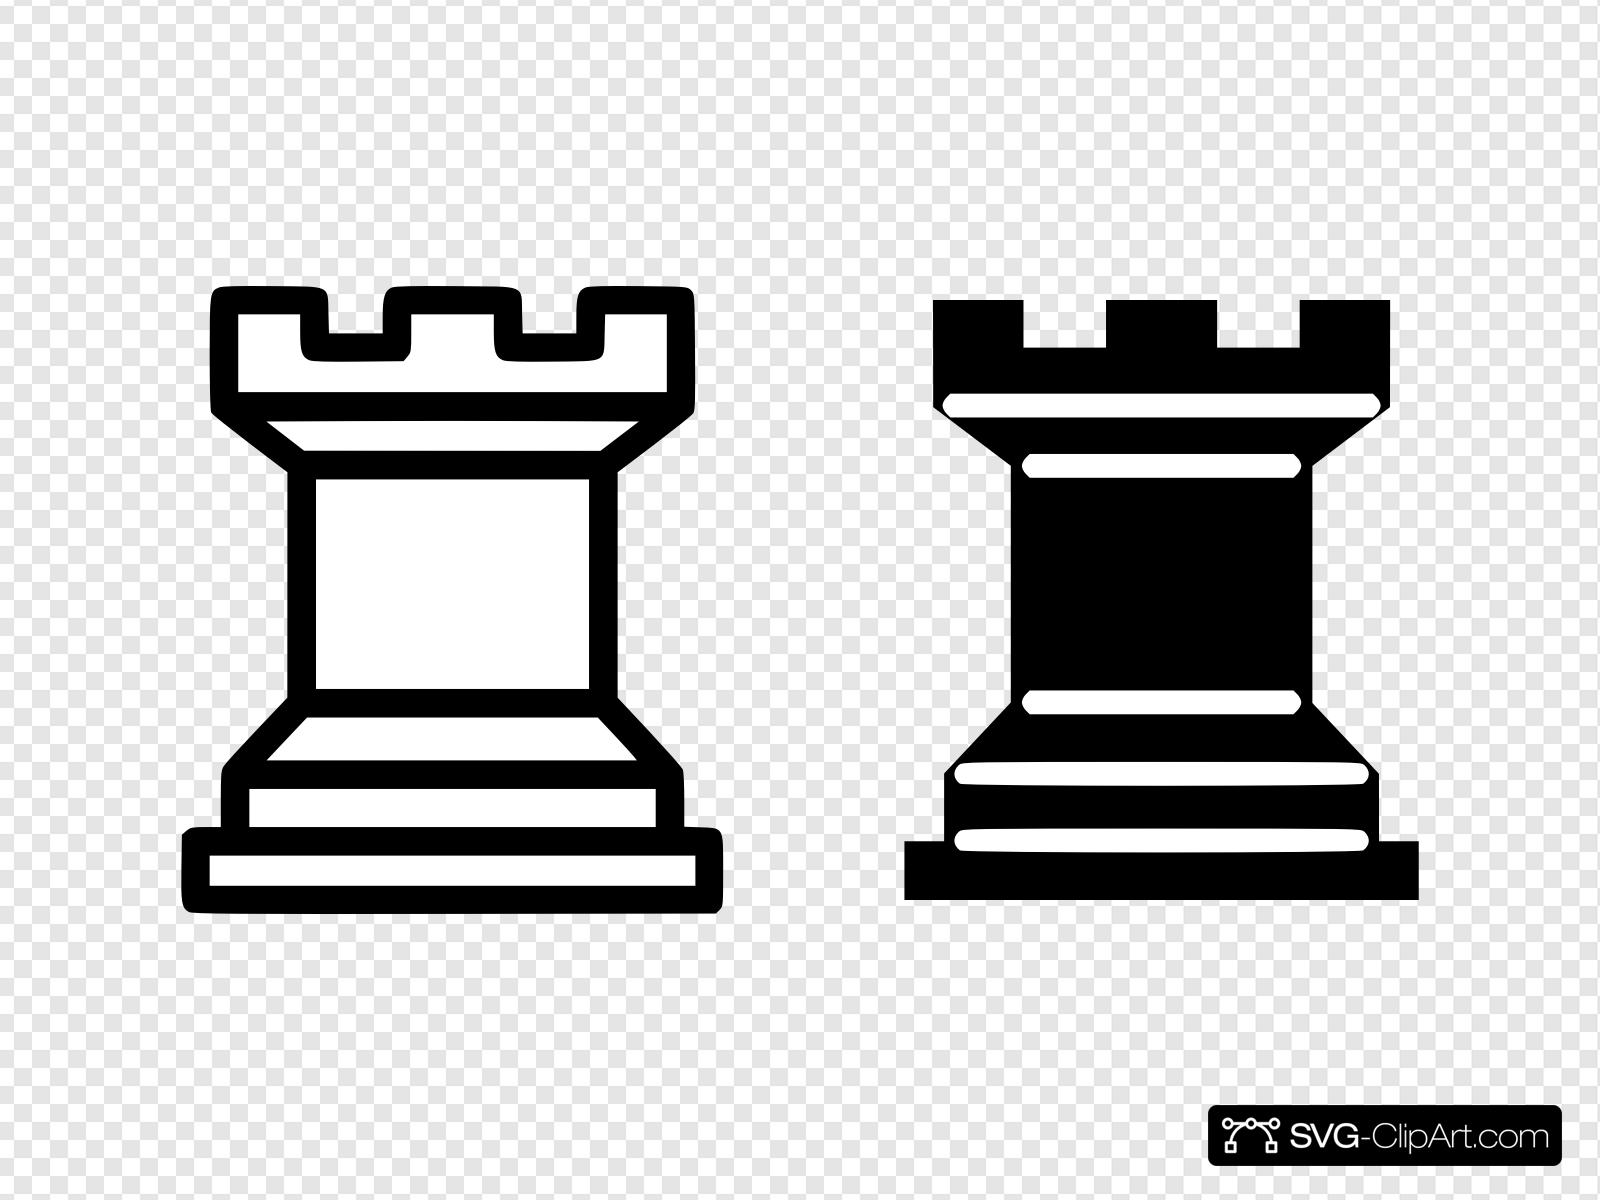 Black And White Simple Chess Pieces Clip art, Icon and SVG.